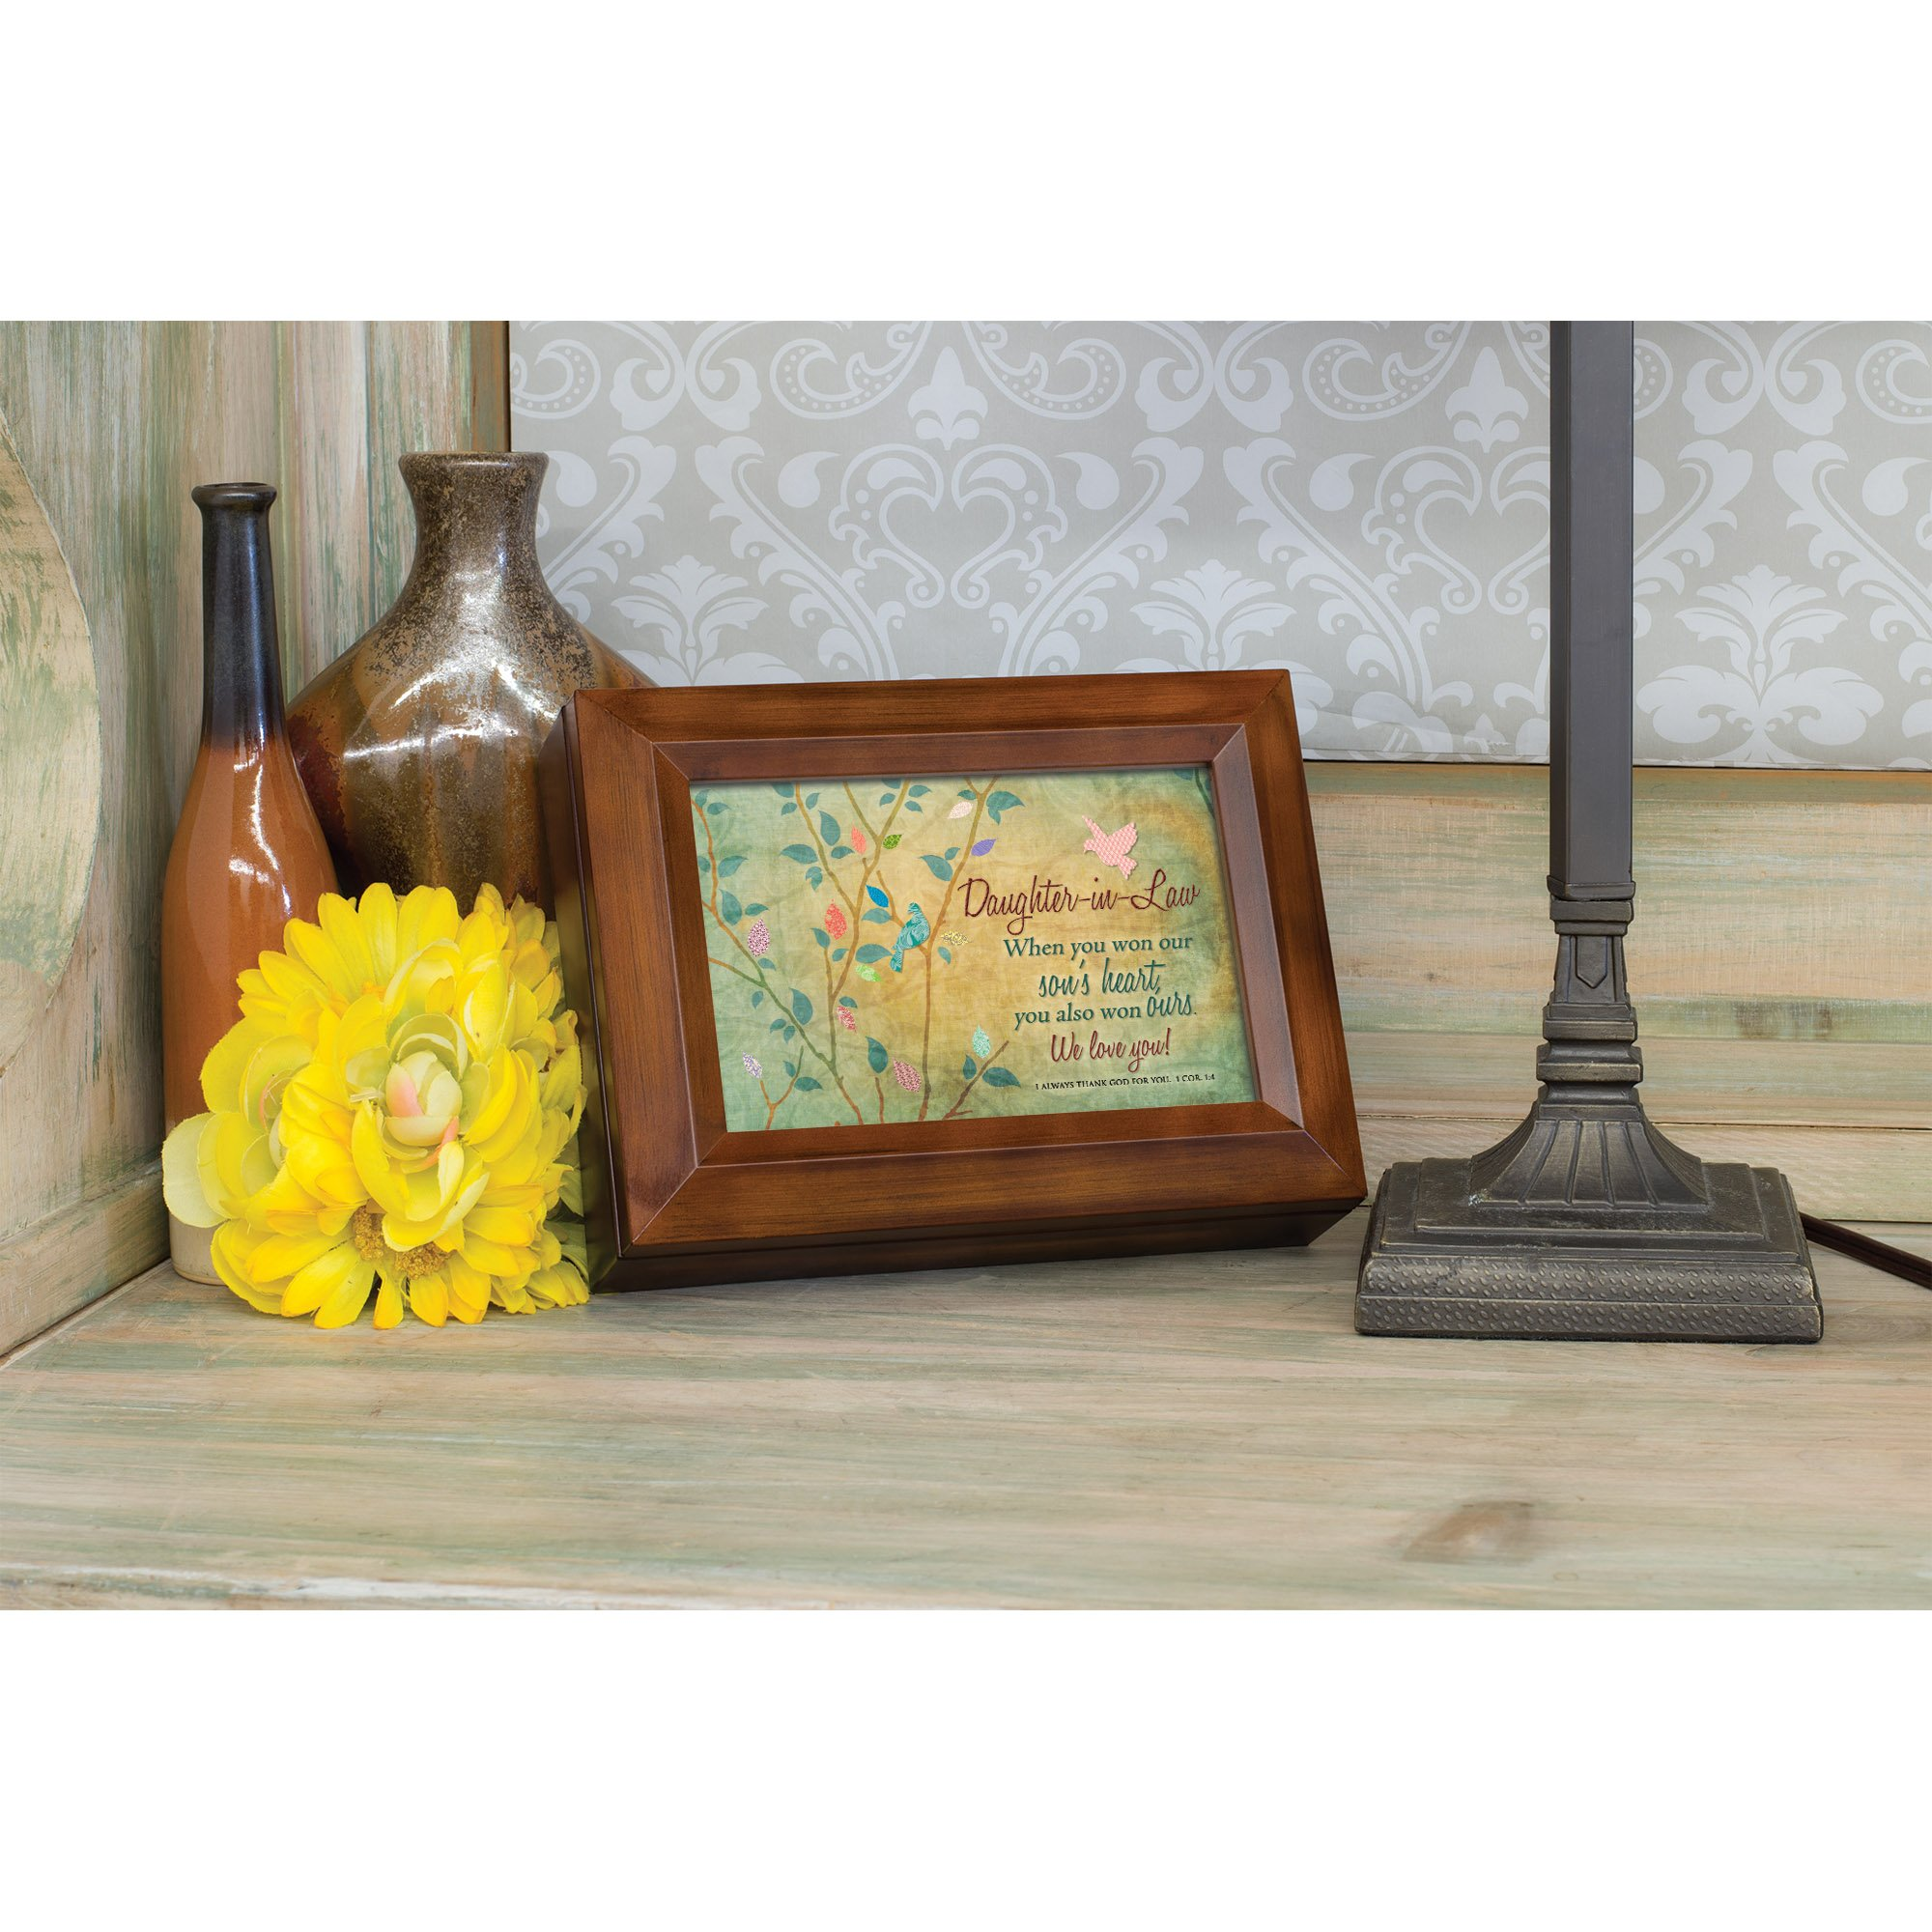 Cottage Garden Daughter-in-Law We Love You Wood Finish Jewelry Music Box - Plays Tune You Are My Sunshine by Cottage Garden (Image #5)